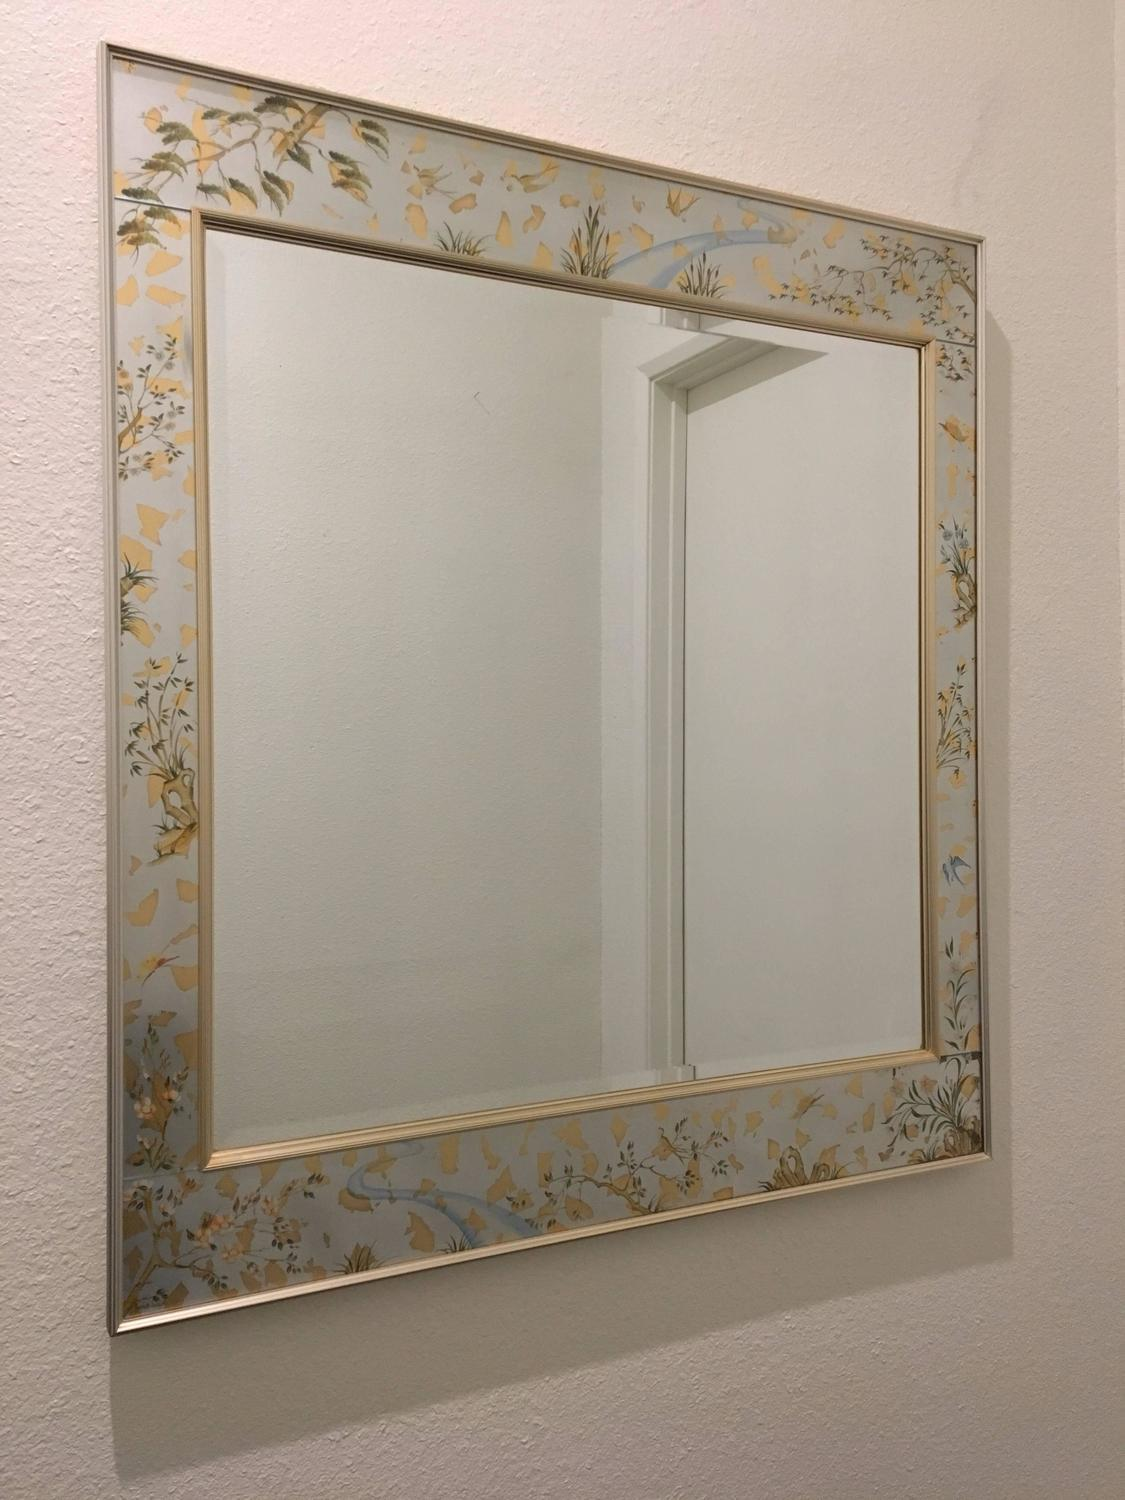 1980s large silver chinoiserie beveled mirror by la barge for Silver mirrors for sale